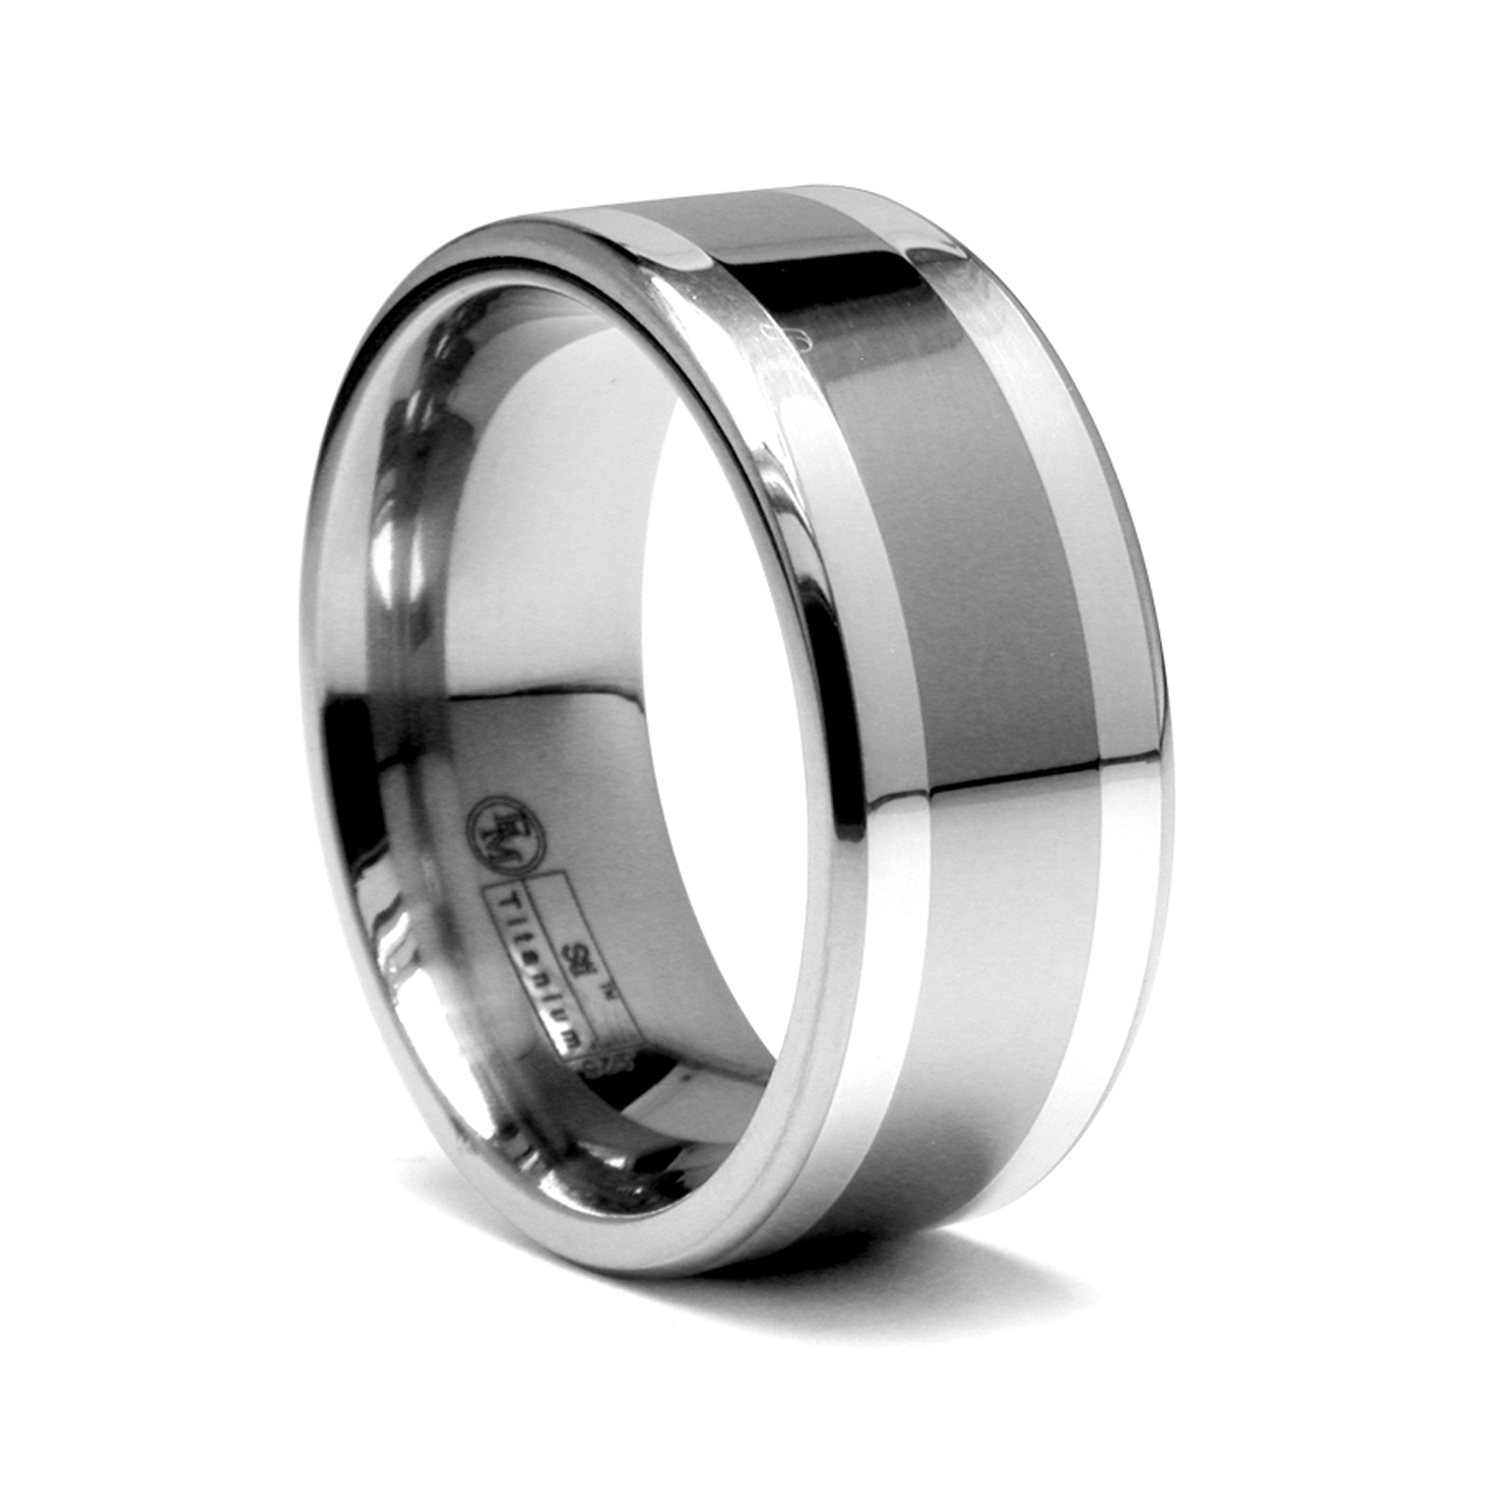 brushed s inlay pinky comfort bold com titanium wide amazon finish resin bands fit men mens dp ring with